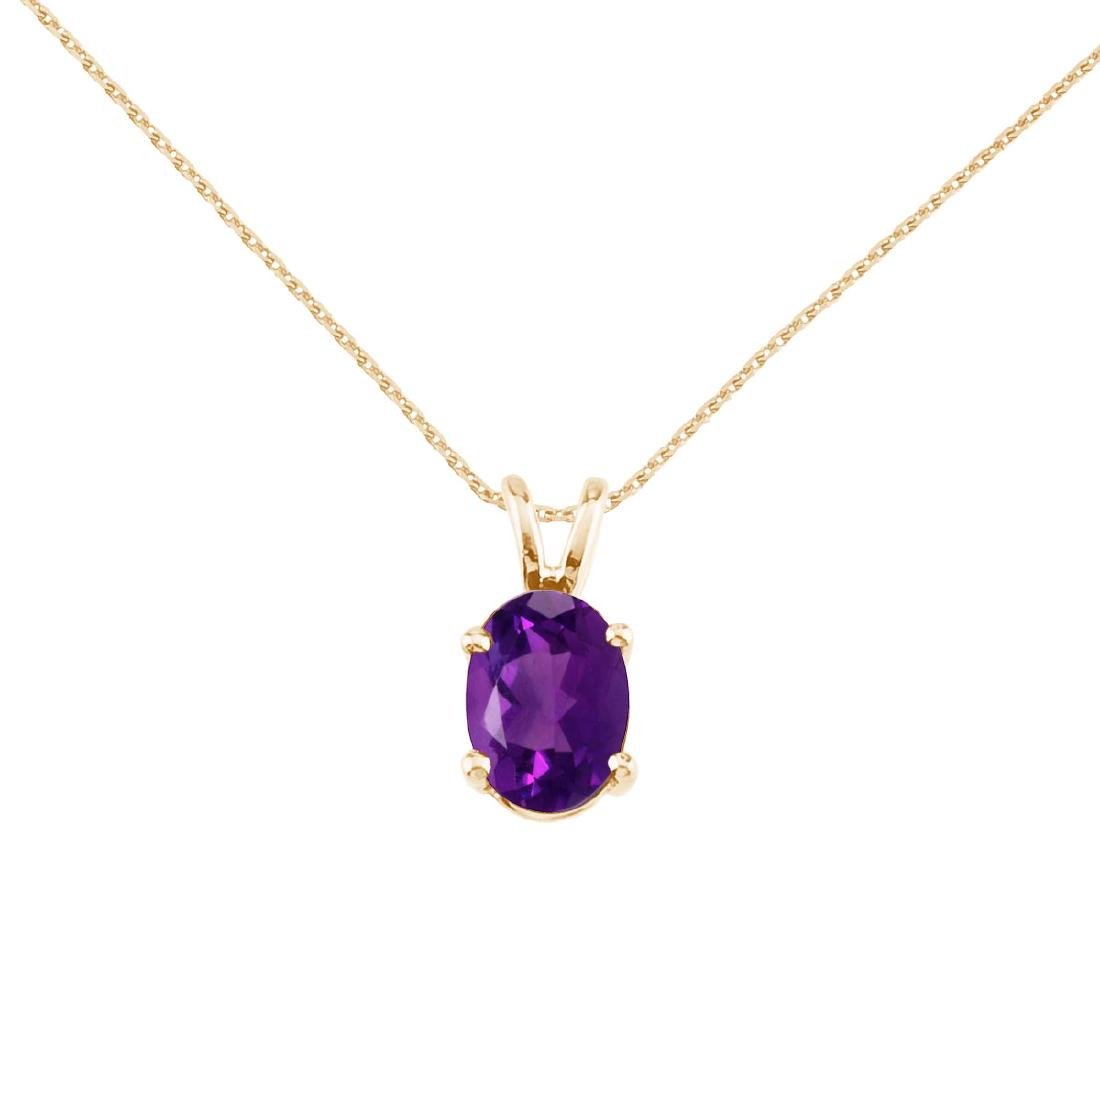 Certified 14k Yellow Gold Oval Amethyst Pendant 0.8 CTW